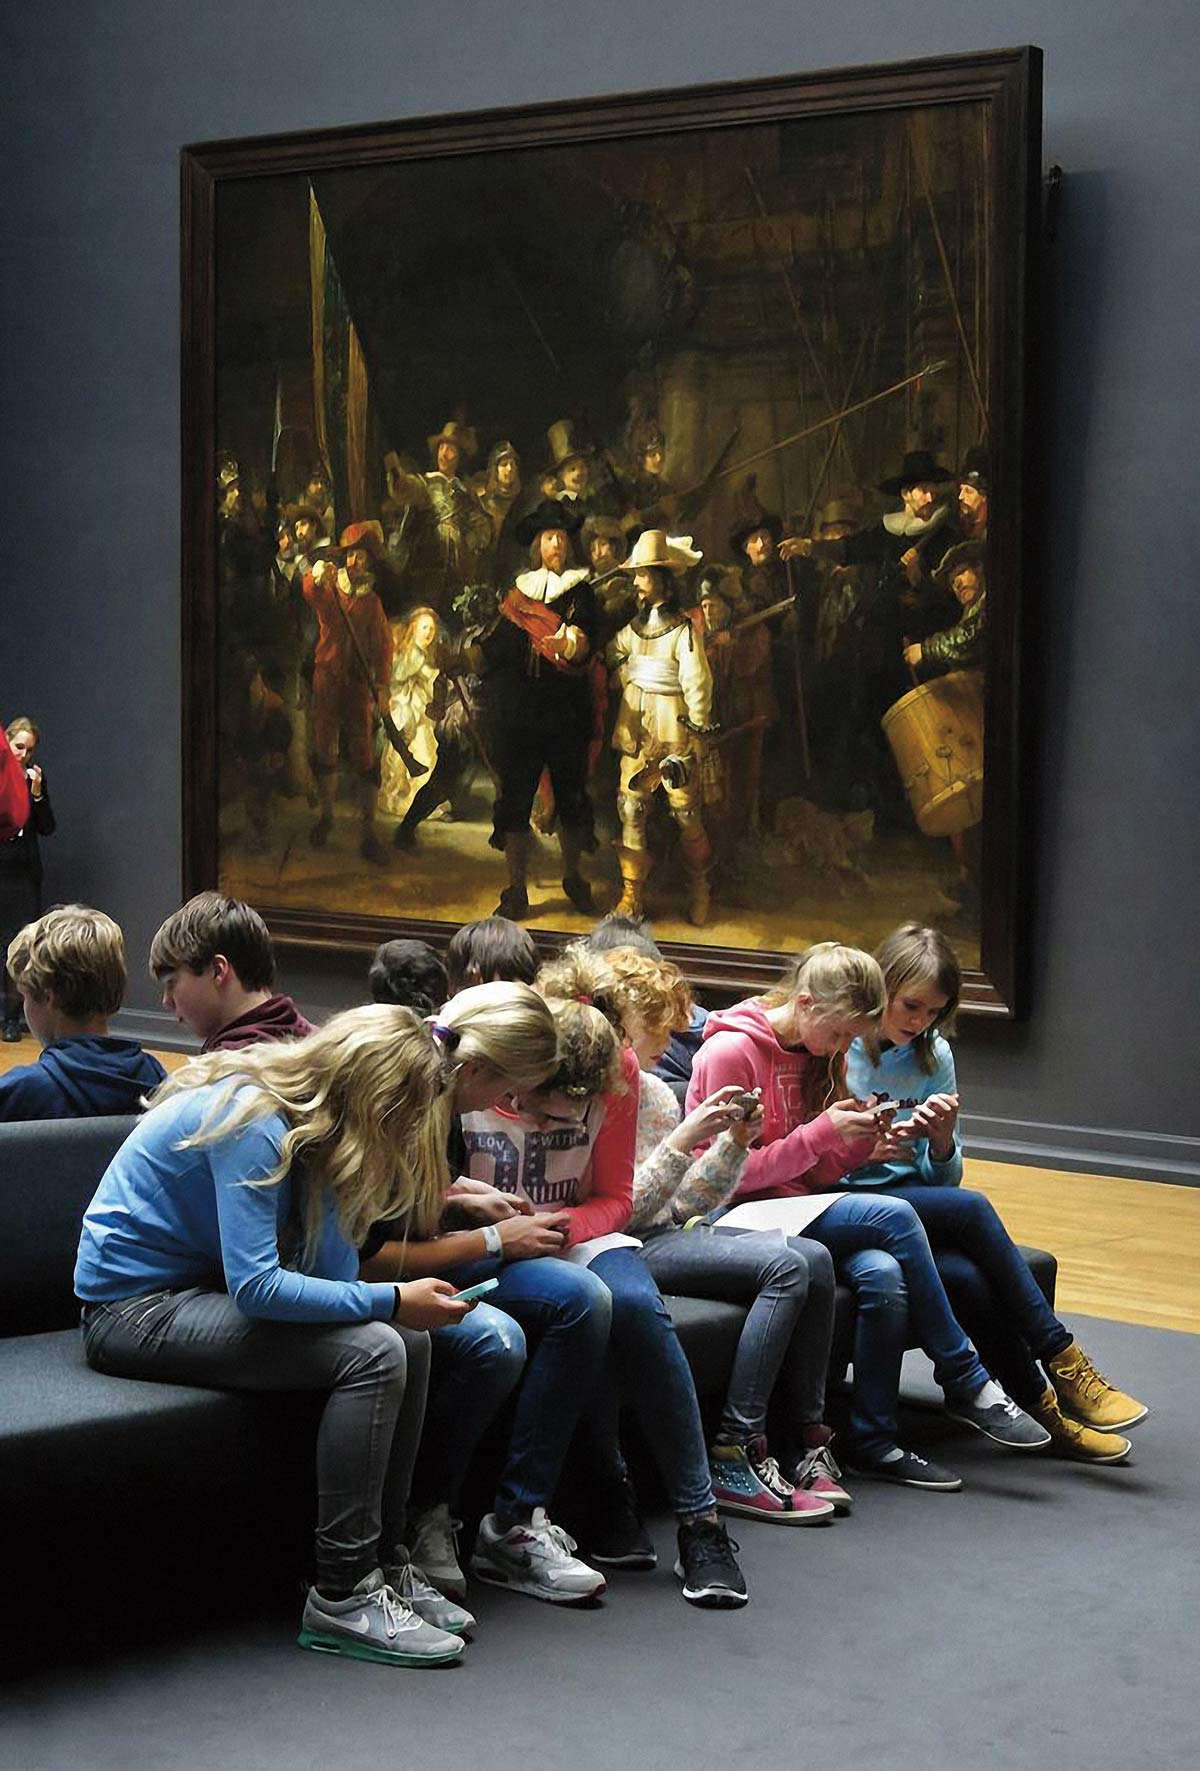 Photo: Schoolchildren sitting on a bench in a museum, engrossed in their smartphones, completely ignoring the large masterpiece hanging on the wall in the background.